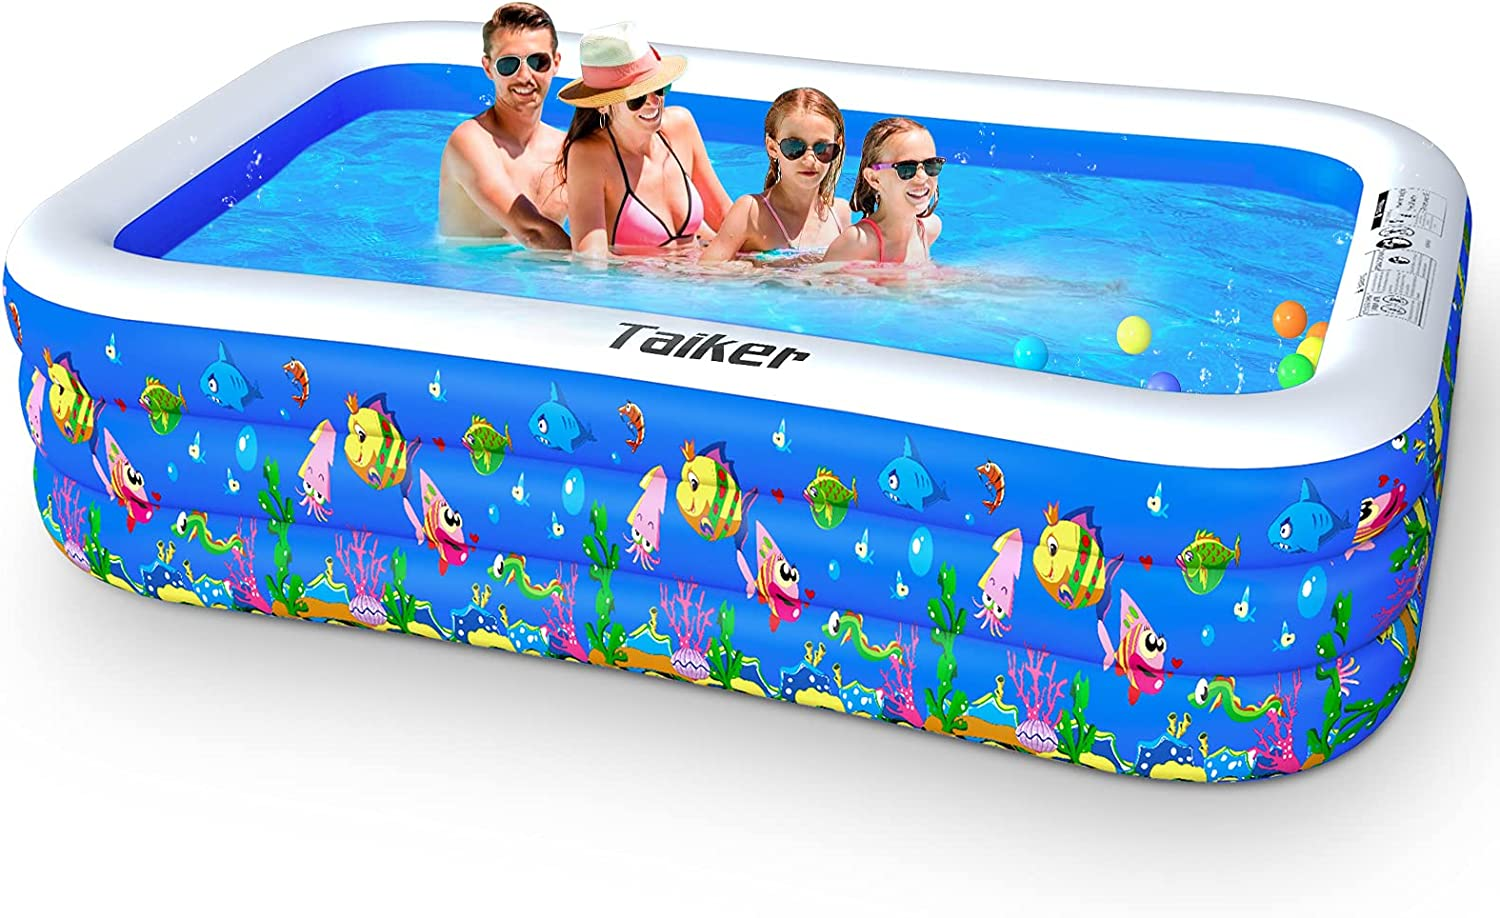 Taiker Inflatable Swimming Pools Kiddie Pools Family Lounge Pools 96 X 57 X 21 Large Family Swimming Pool For Kids Adults Babies Toddlers Outdoor Garden Backyard Garden Outdoor